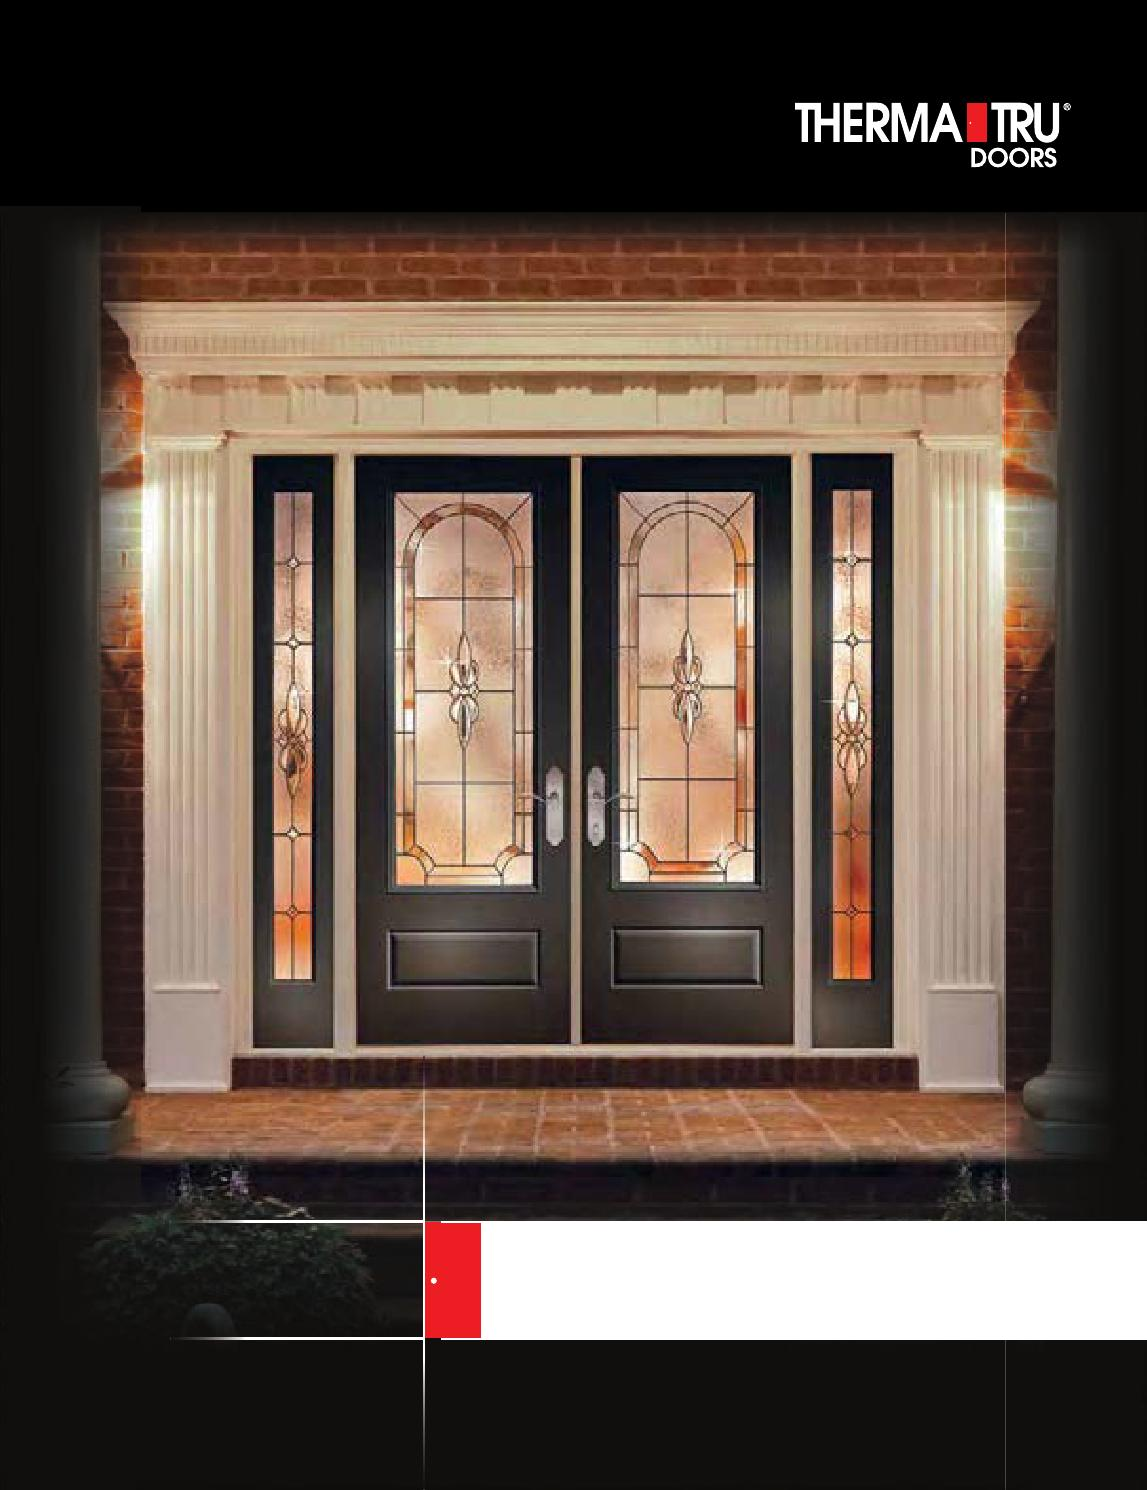 Therma tru entry doors by meek 39 s lumber hardware issuu for Therma tru entry doors